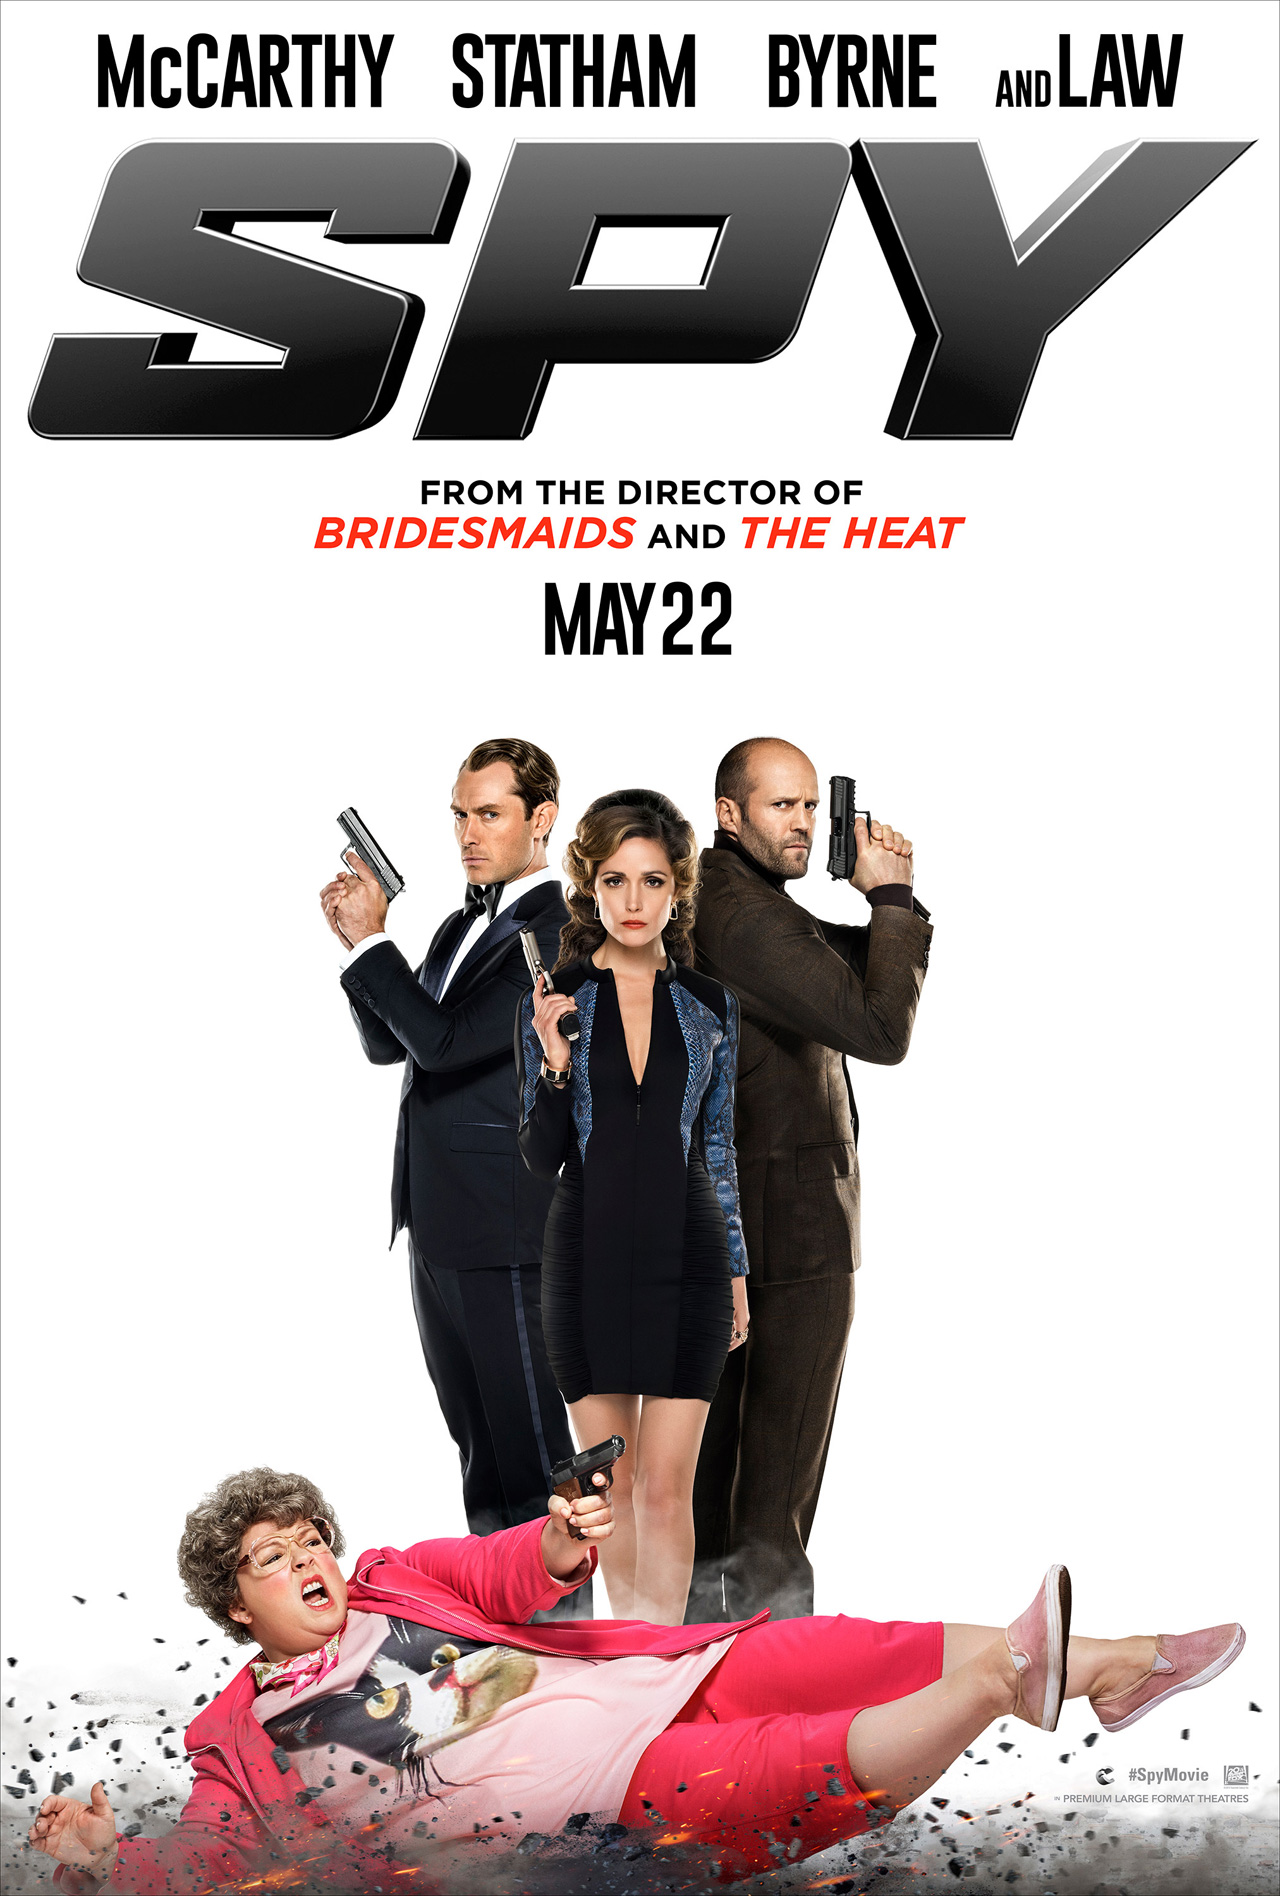 Here You Can Watch Spy 2015 Movie Online Download Spy 2015 Movie For Free Spy 2015 Full Movie Spy 2015 Watch Online Spy 2015 Full Movie Free